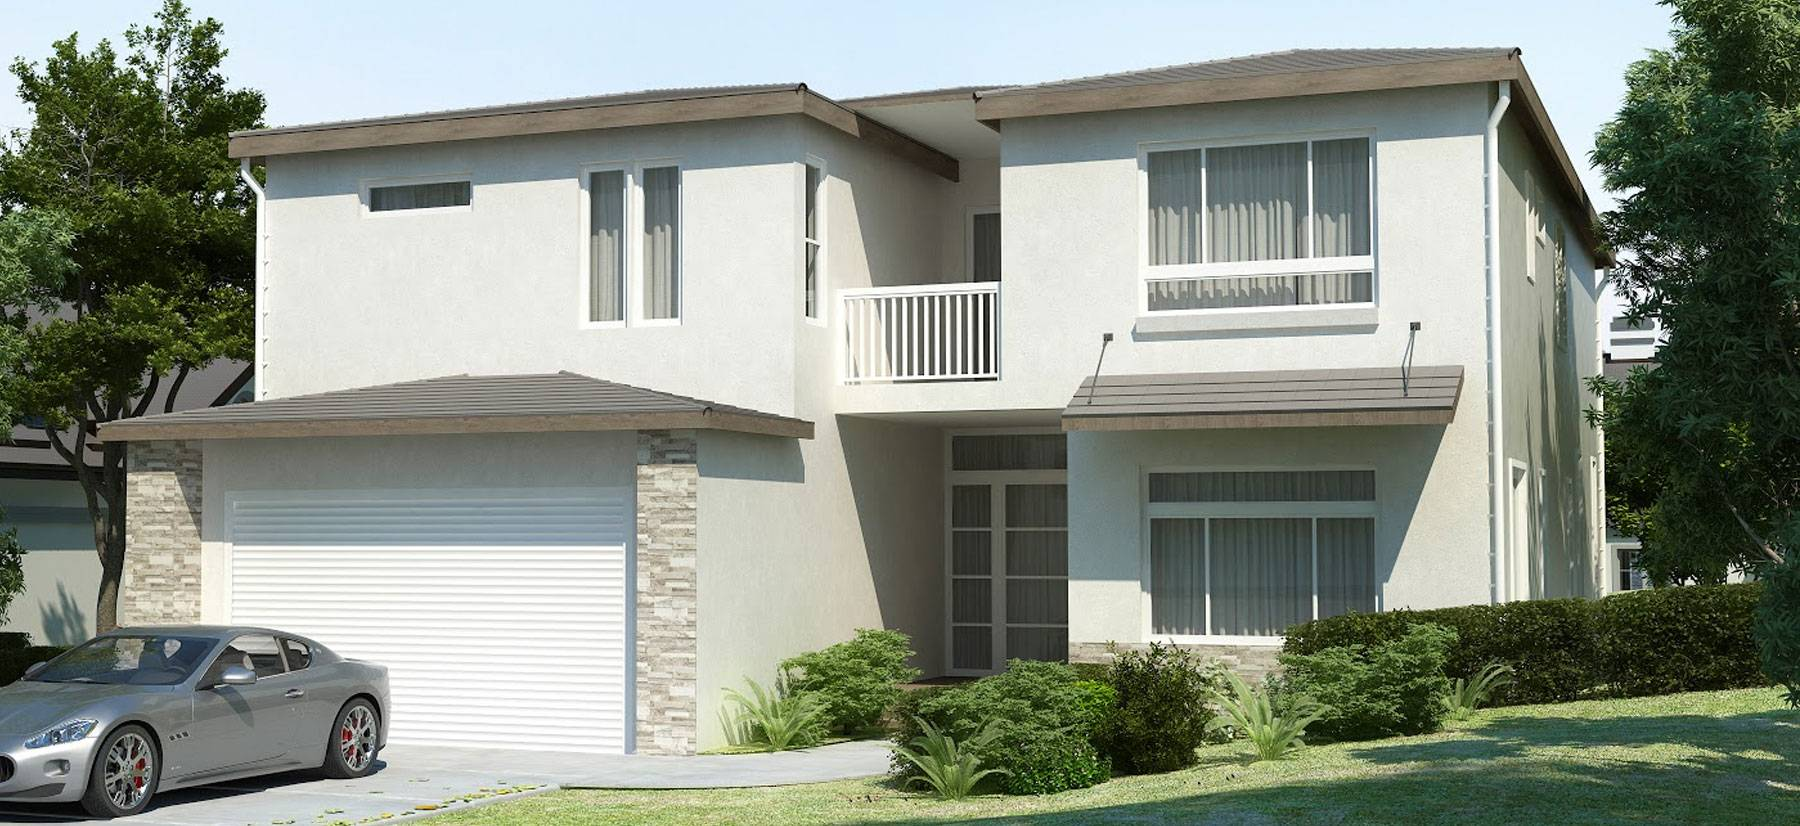 sample single-family housing project by the City government of Gilroy